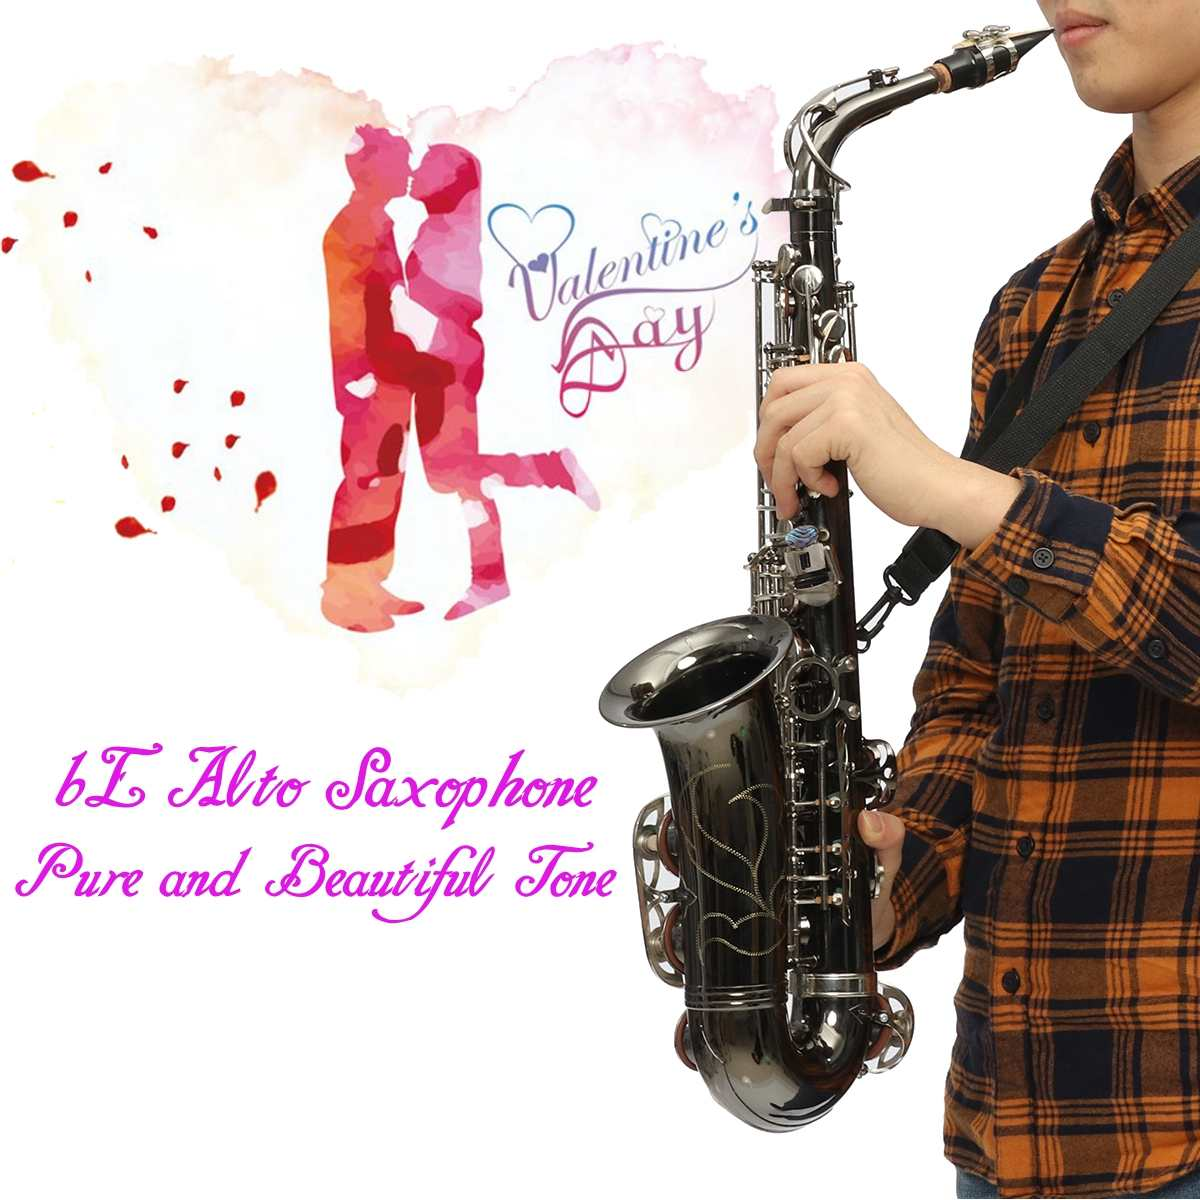 Brass tube body Nickel silver Sax E Flat Alto Saxophone Abalone shell button Professional pure Eb tone For Valentines PlayBrass tube body Nickel silver Sax E Flat Alto Saxophone Abalone shell button Professional pure Eb tone For Valentines Play